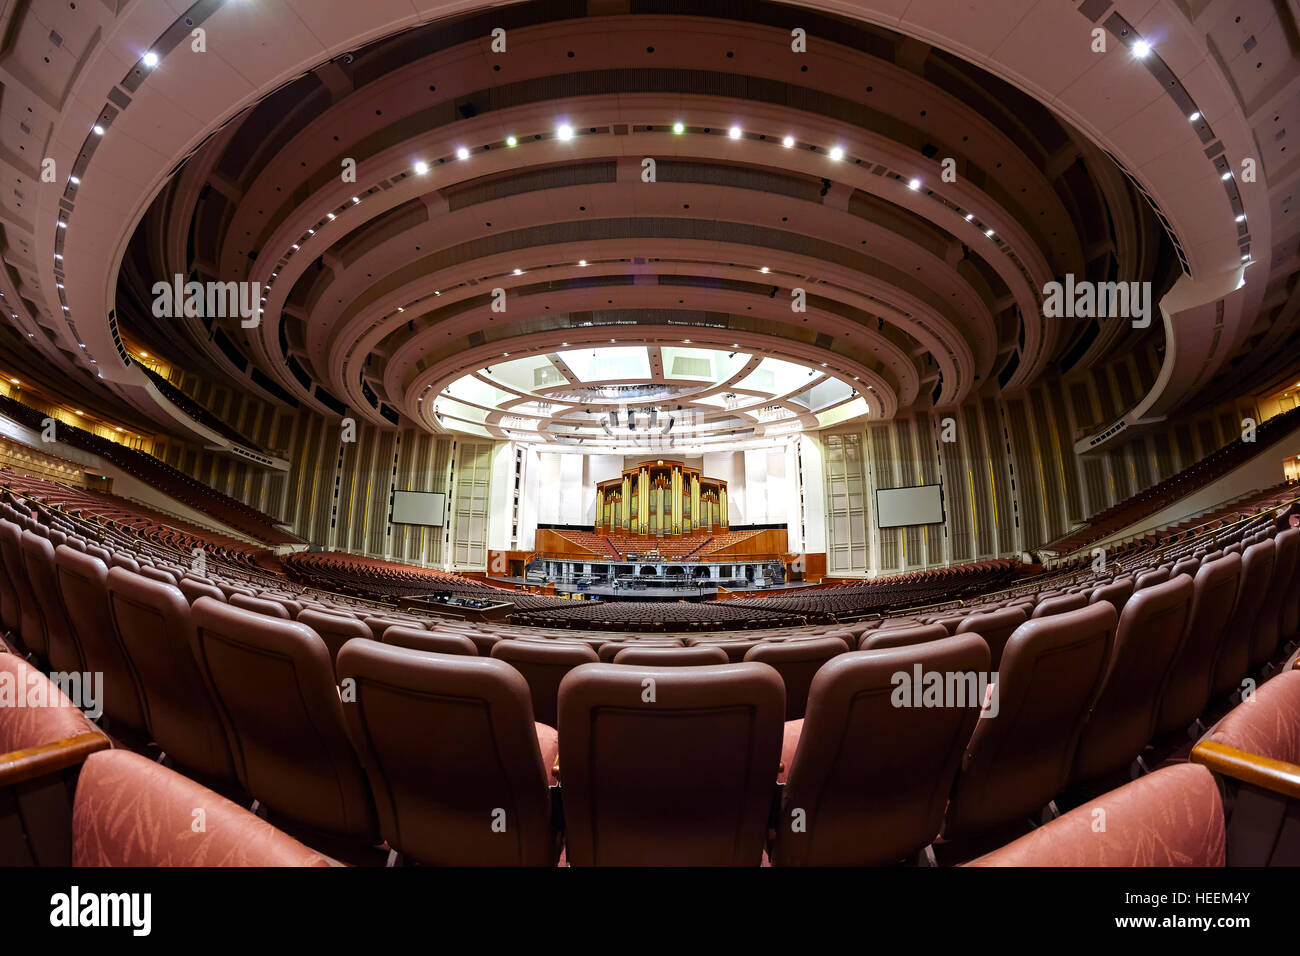 Interior of the 21,000 seat LDS Conference Center auditorium. - Stock Image